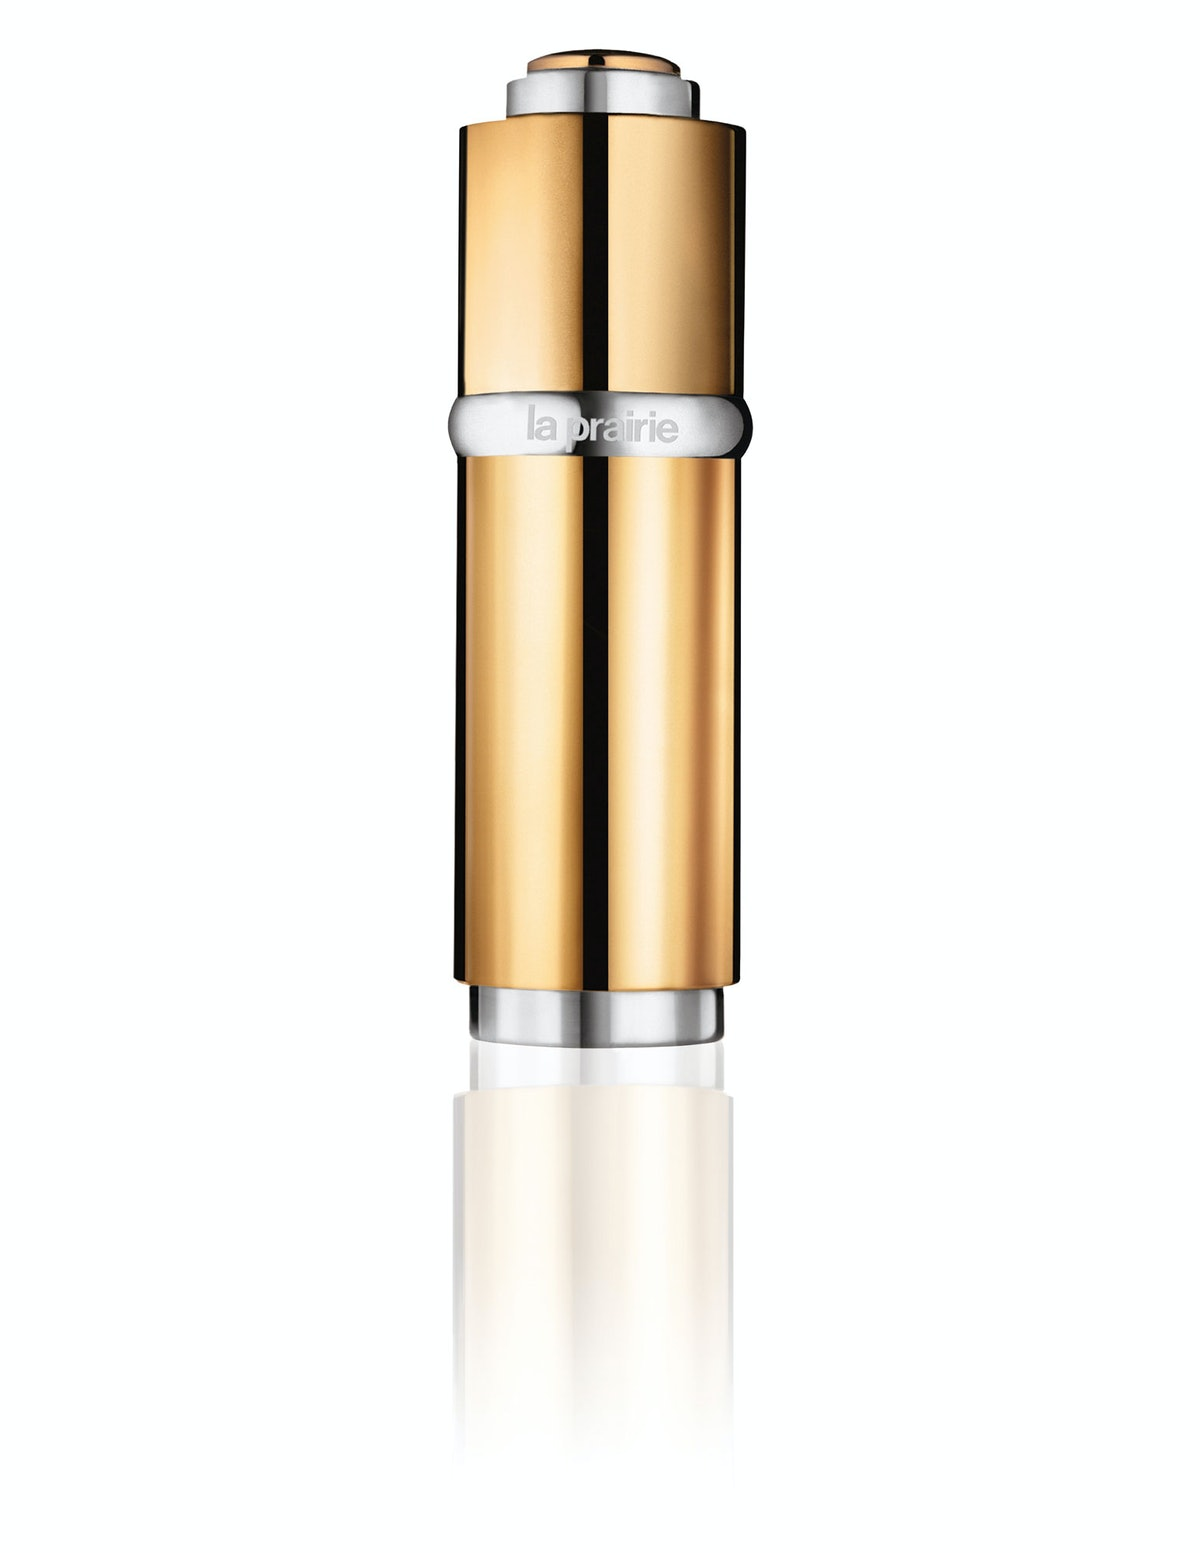 La Prairie limited edition Luxurious Radiance Moments serum, $320 (part of set including face cream ...